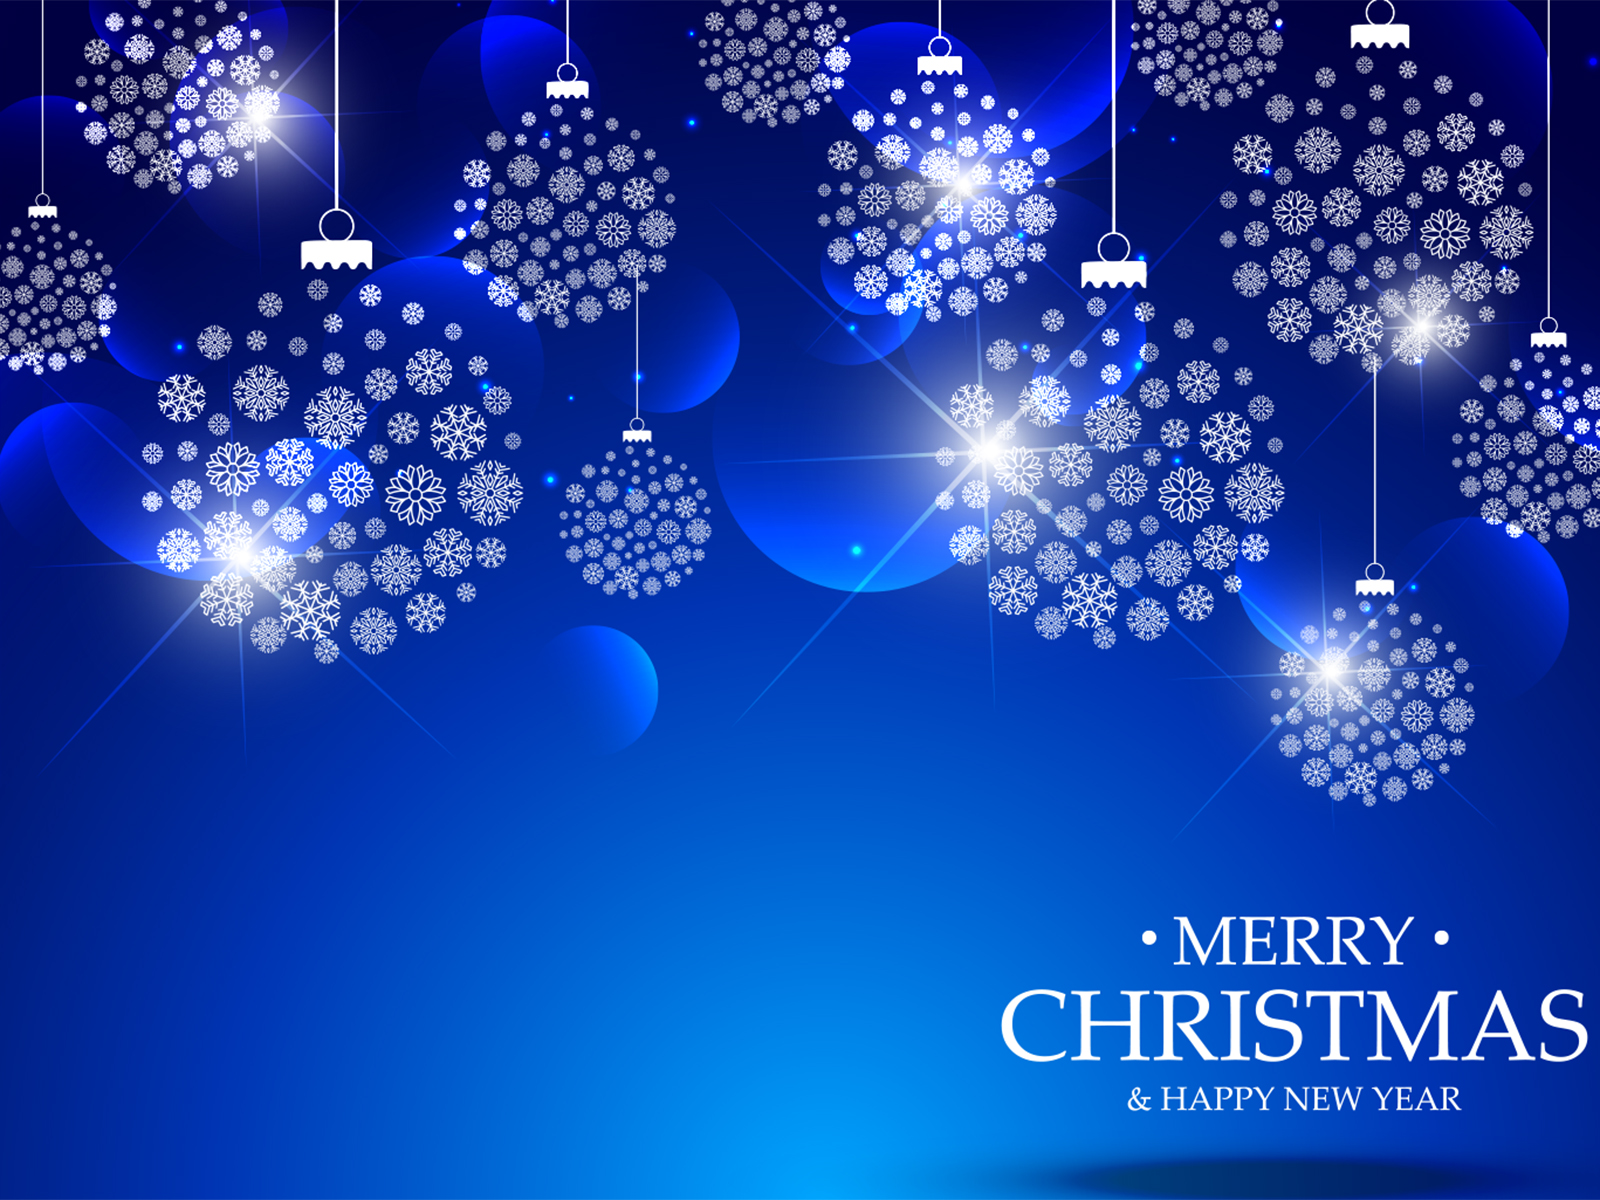 Blue Merry Christmas PPT Backgrounds